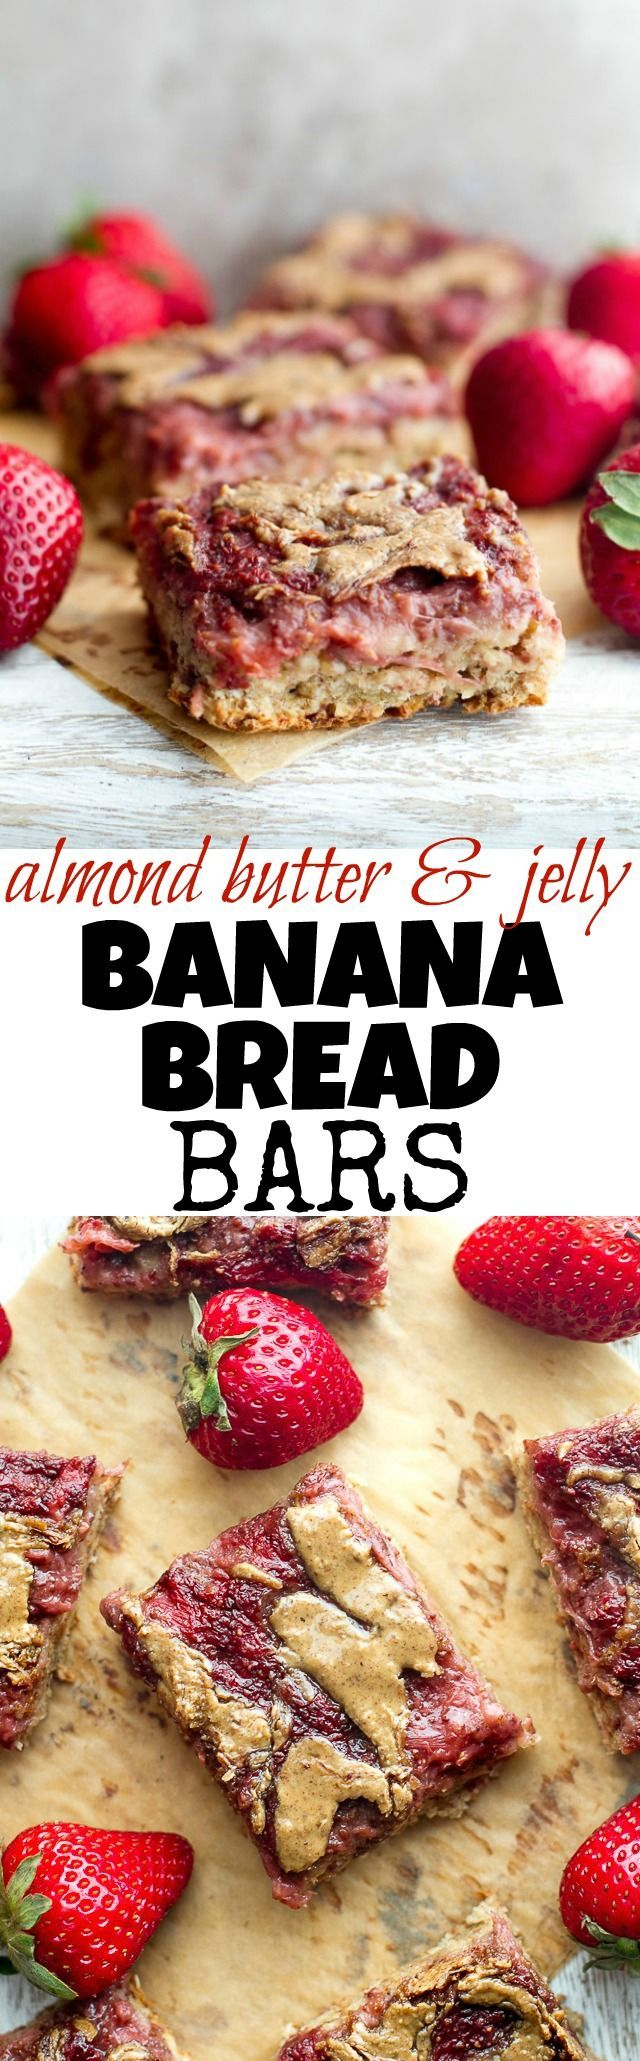 These DELICIOUS Almond Butter and Jelly Banana Bread Bars are SO soft, tender, and flavorful that you'd never believe they're made without any flour, oil, or refined sugar! | runningwithspoons... #vegan #glutenfree #healthy #recipe